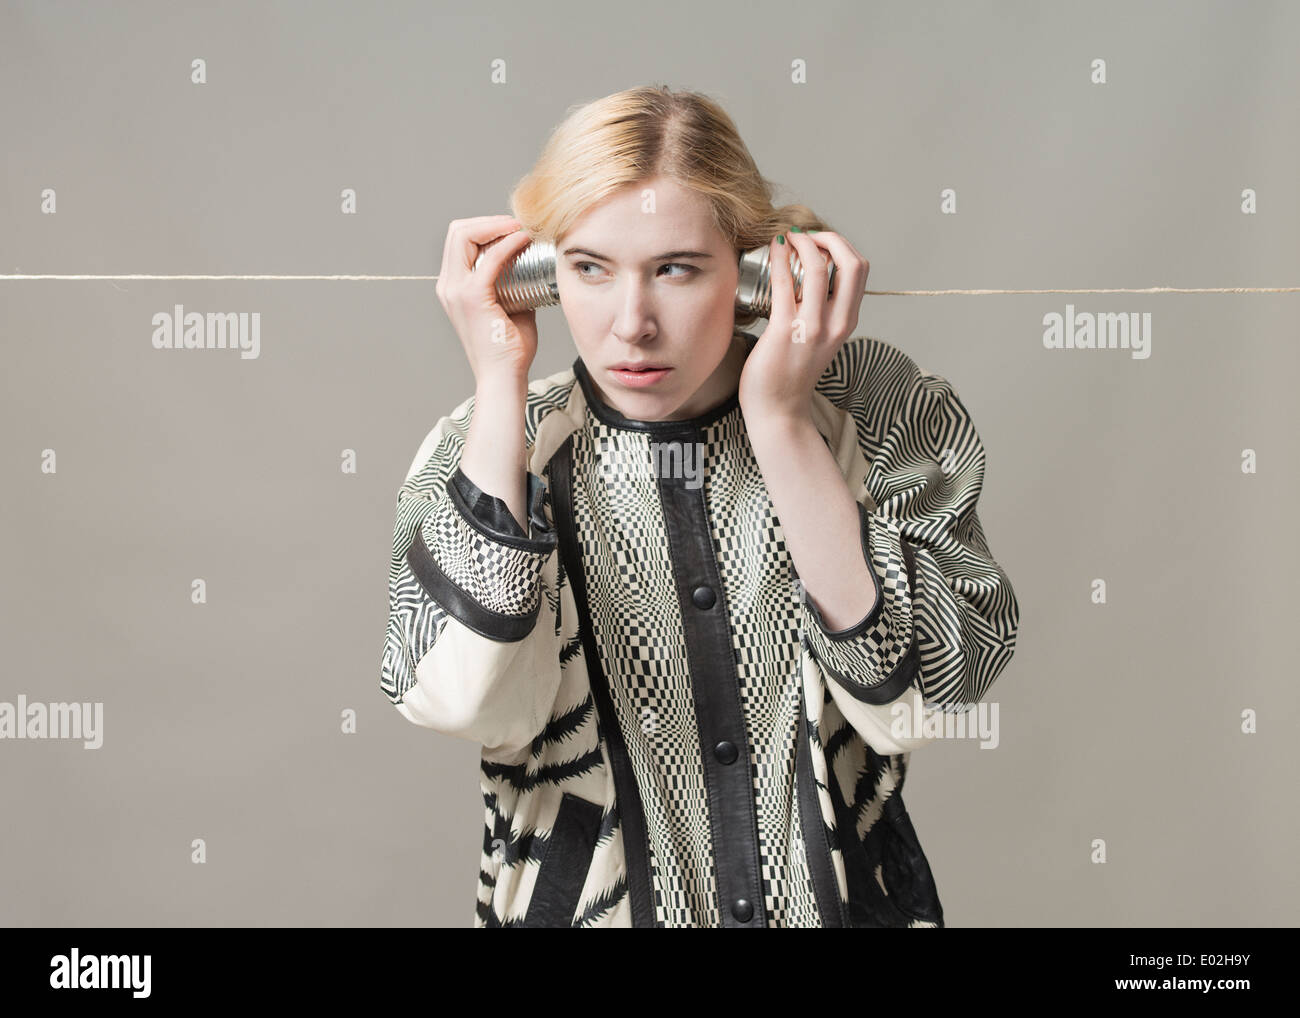 Blonde woman listening with tin can phone. Conceptual image of spying, surveillance and communication. - Stock Image